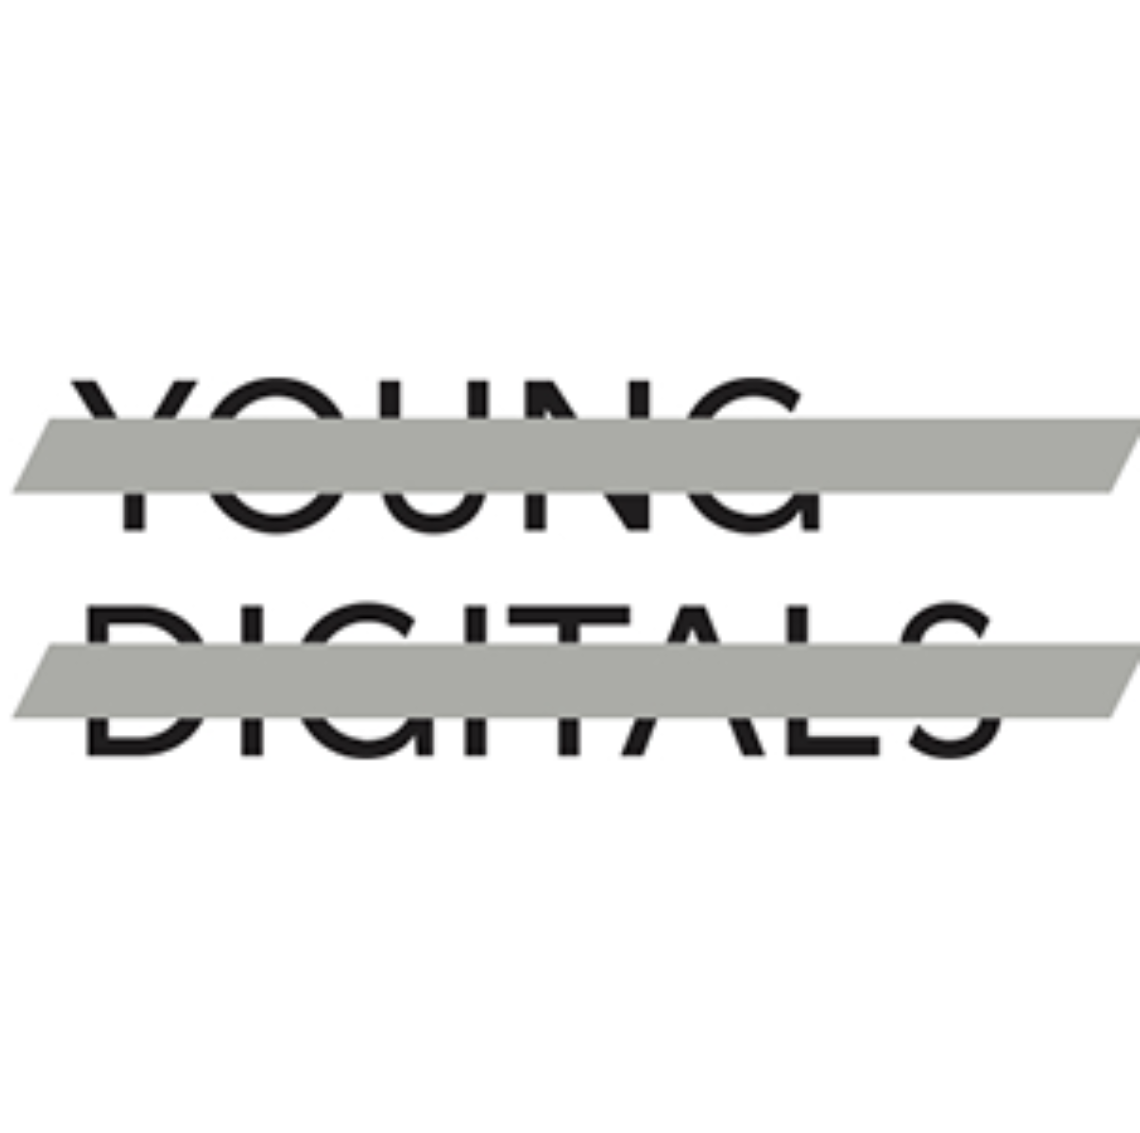 Youngdigitals